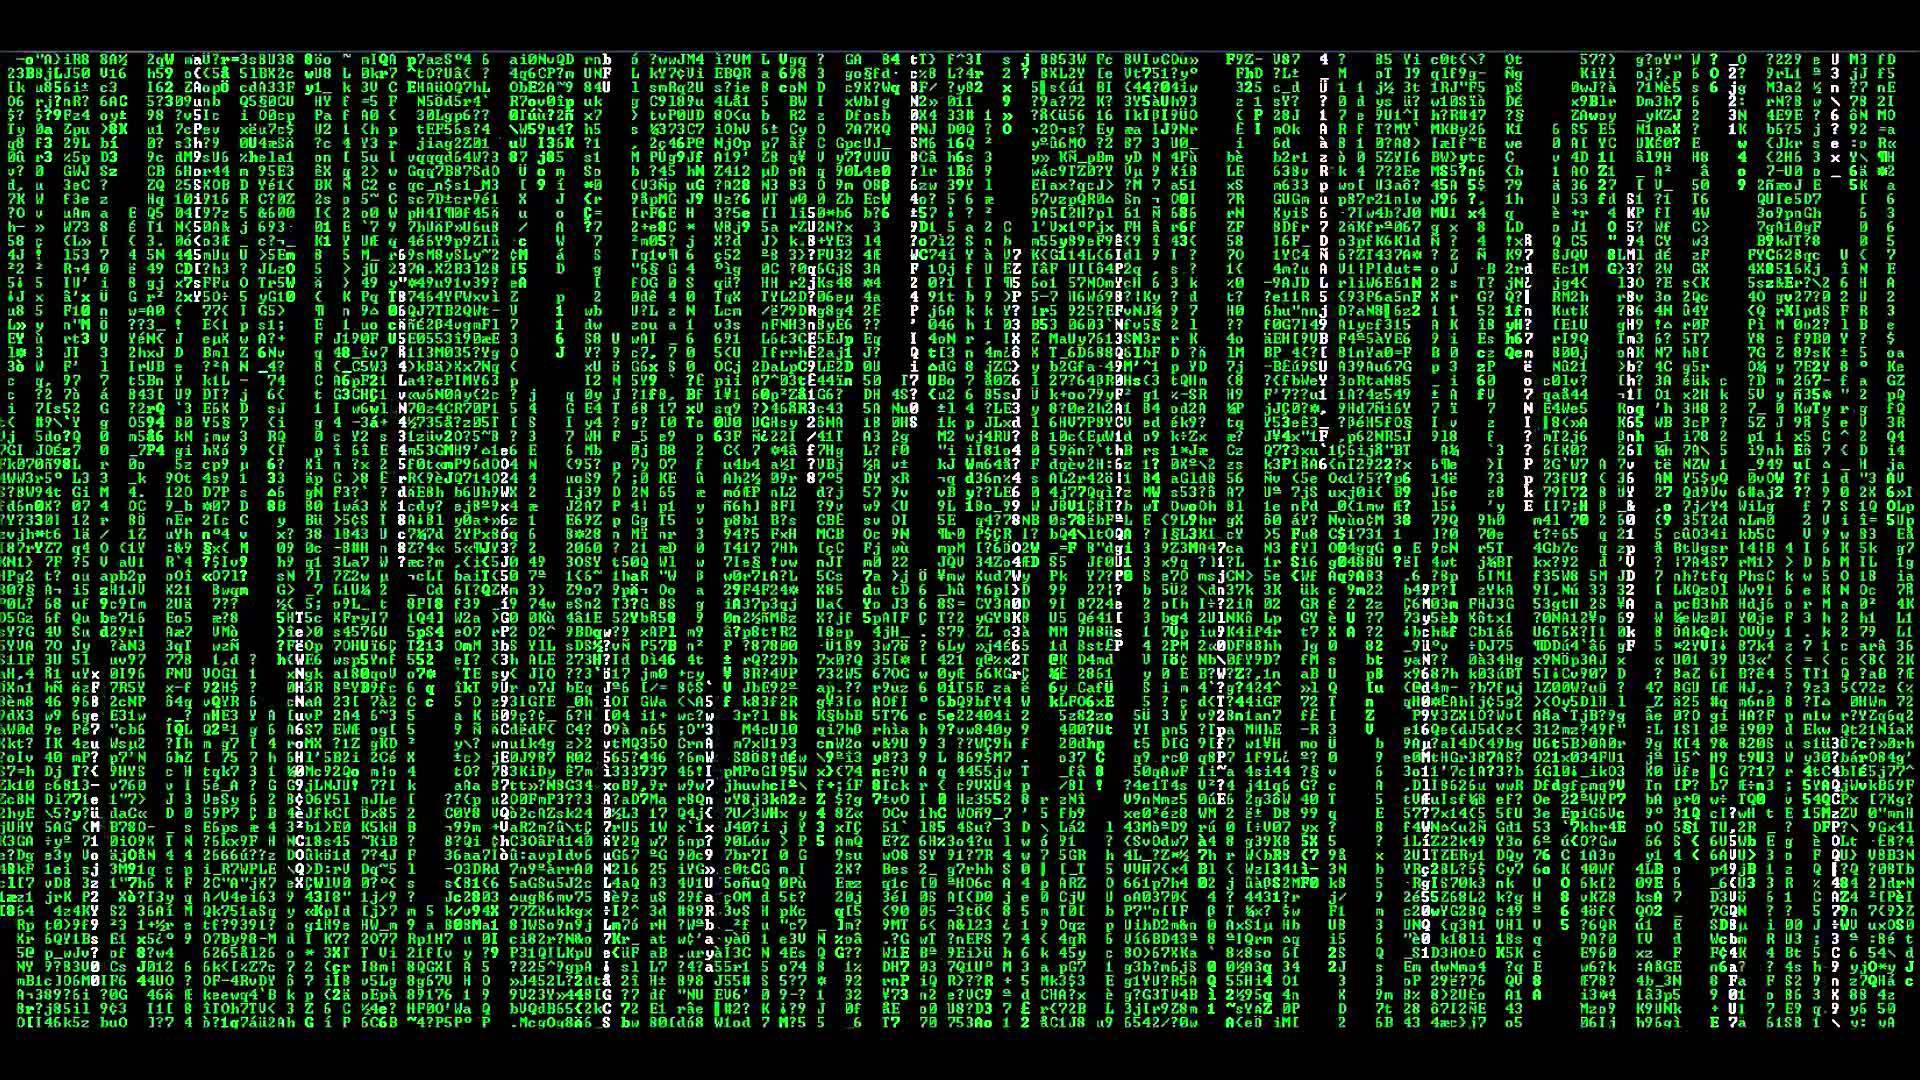 Matrix Live Wallpaper - Android Apps on Google Play